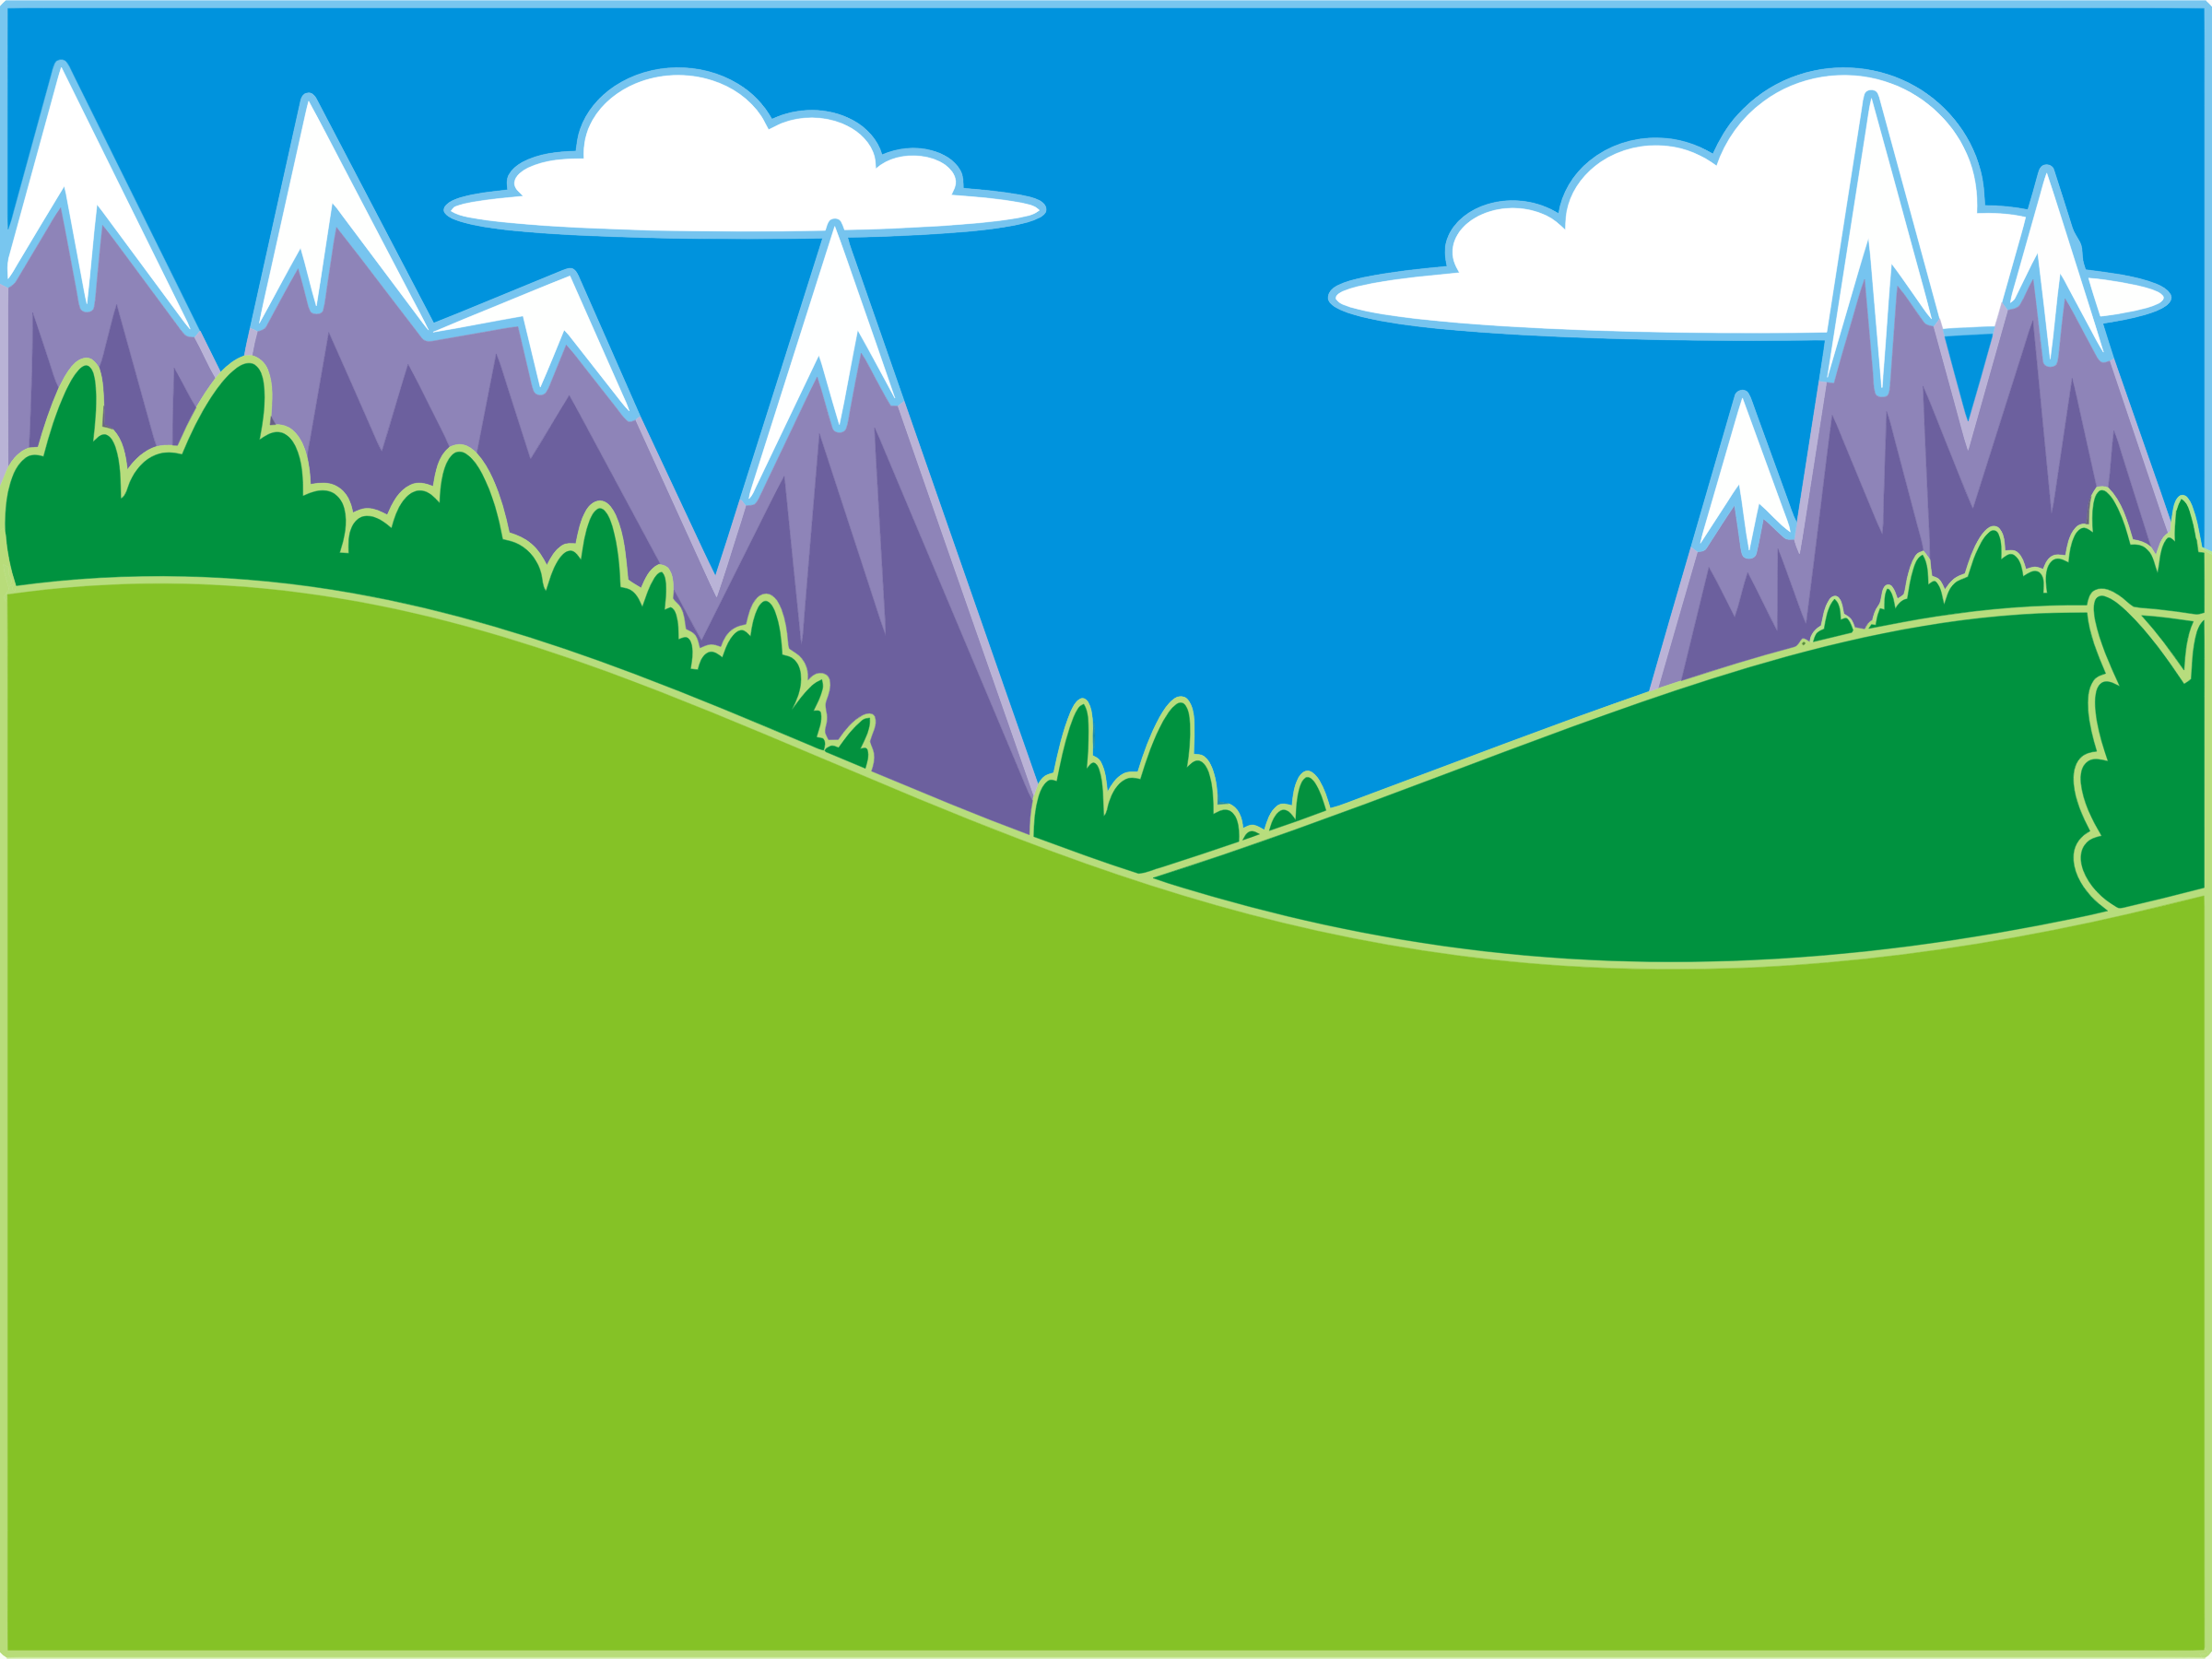 Green Hills And Mountains Landscape by GDJ, Pixabay., on